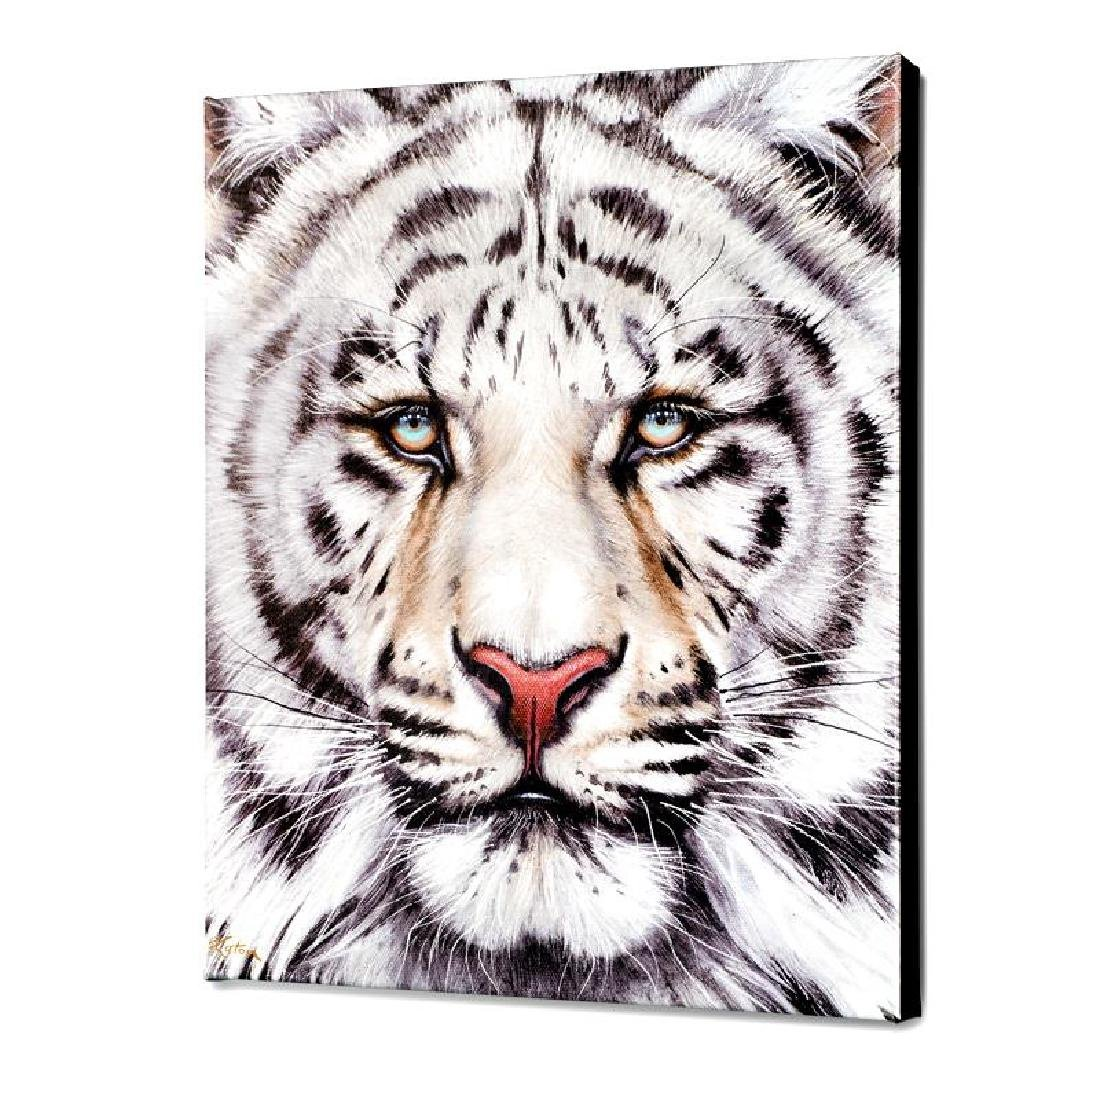 """Bengal"" Limited Edition Giclee on Canvas by Martin"